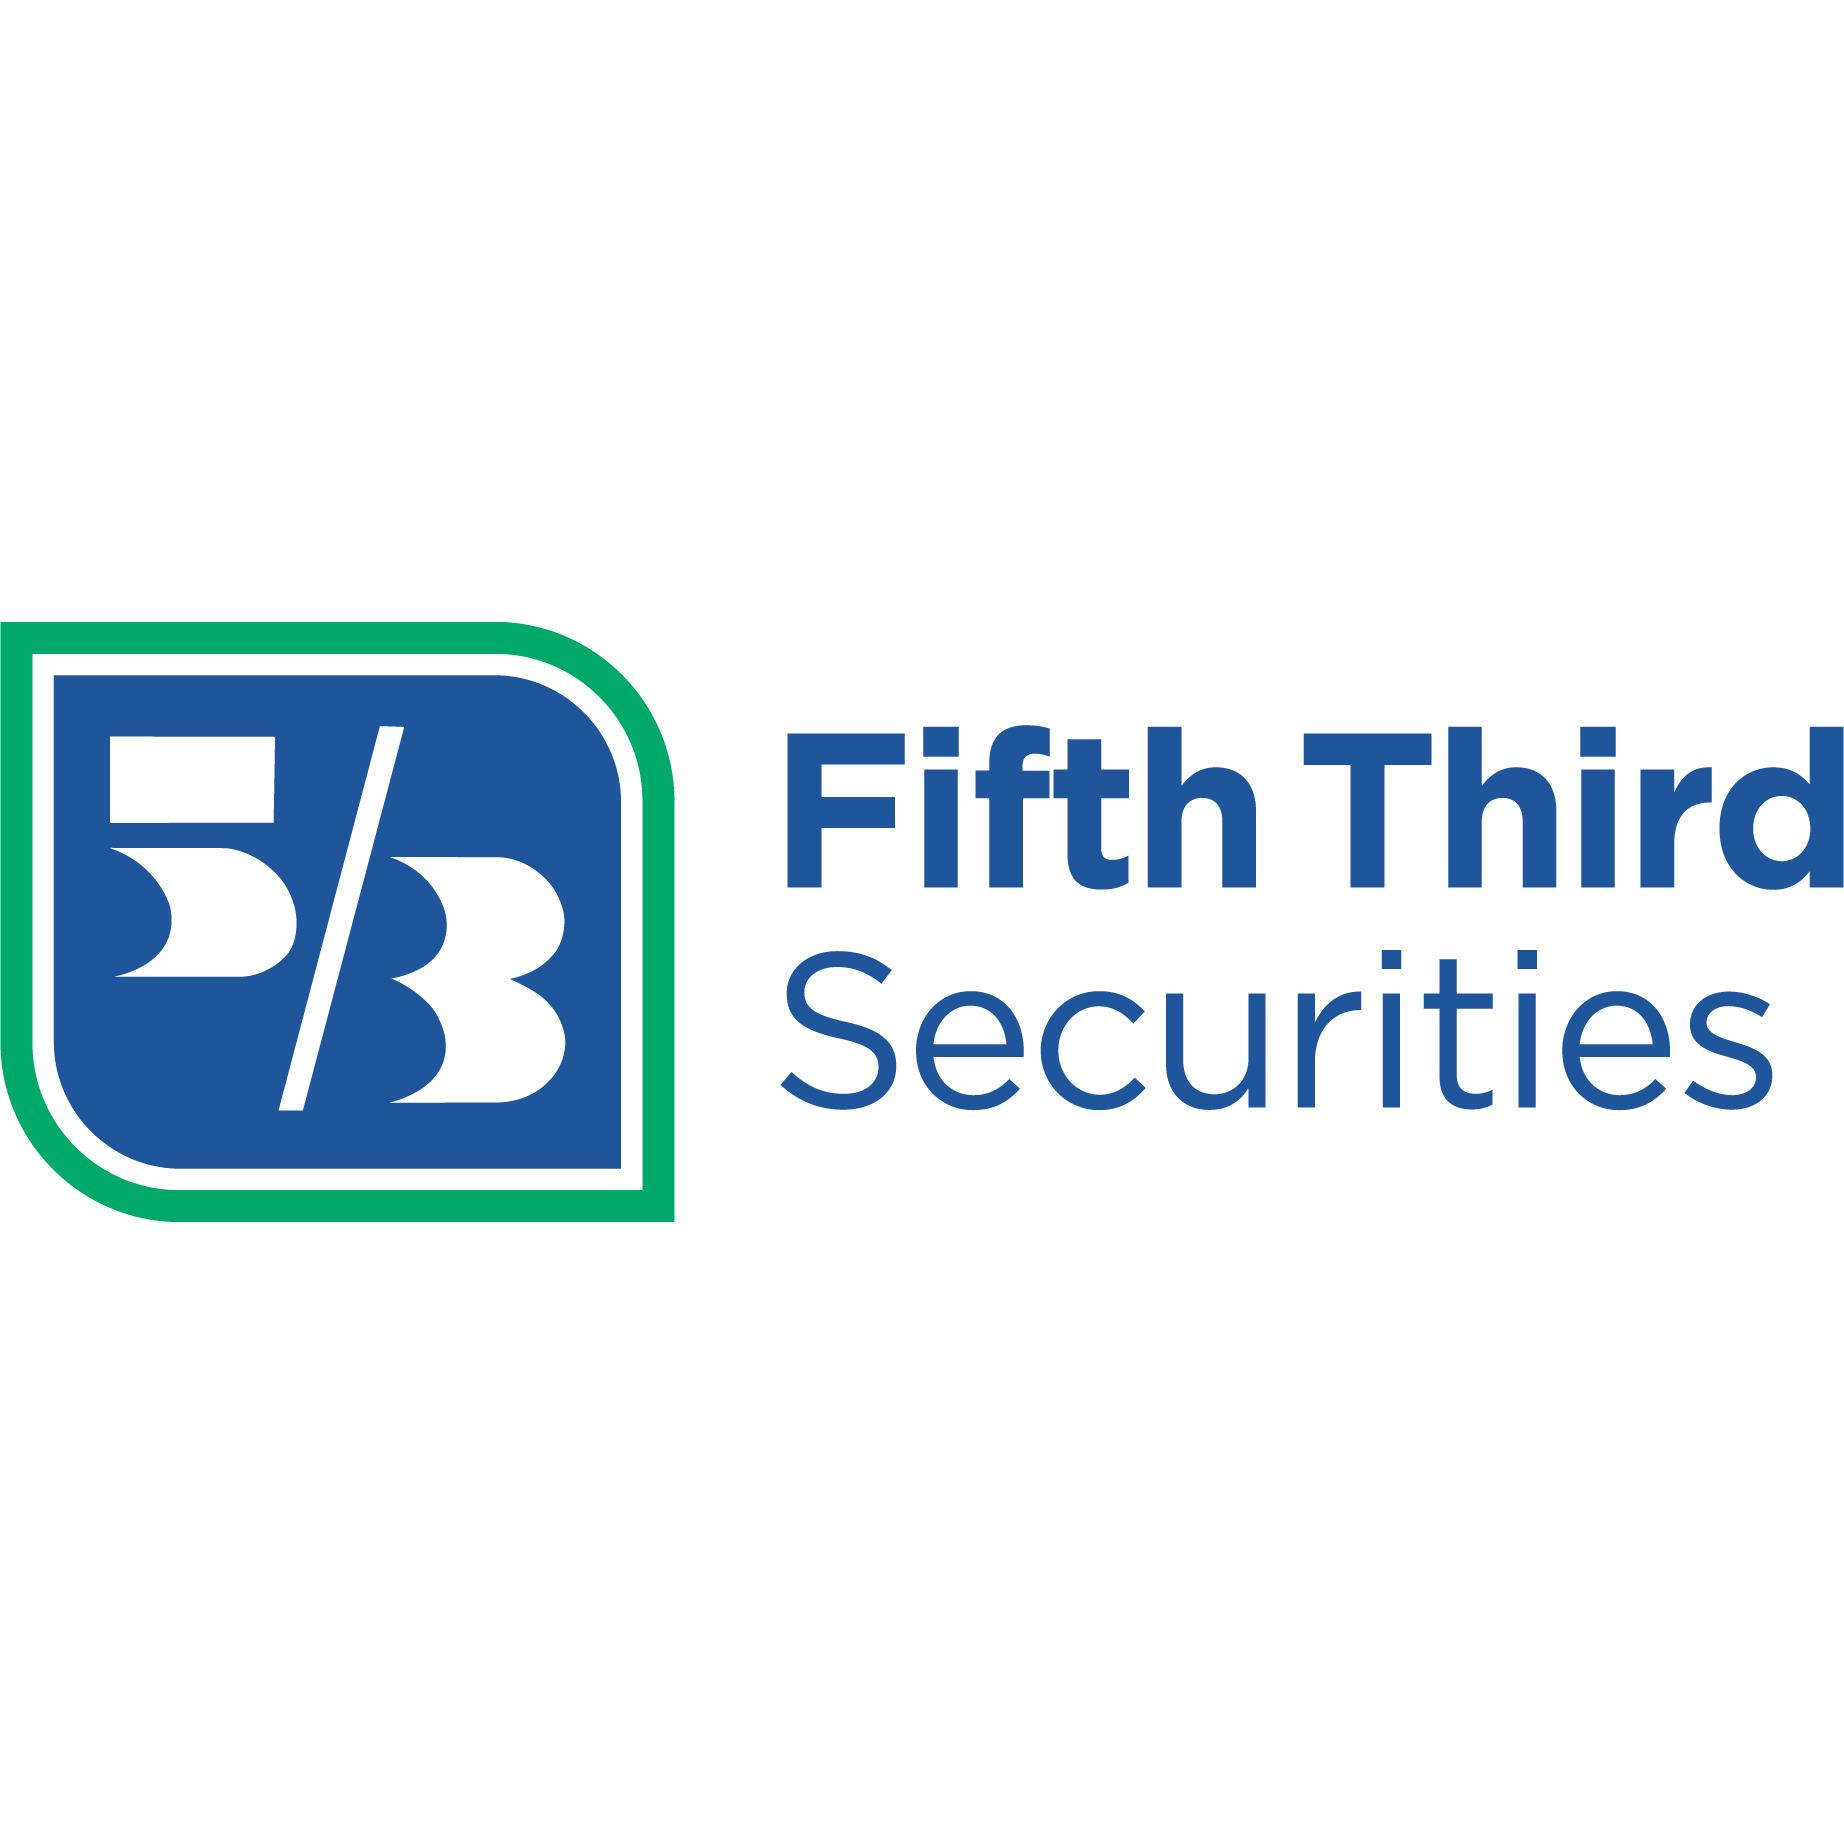 Fifth Third Securities - Danuta Durkiewicz